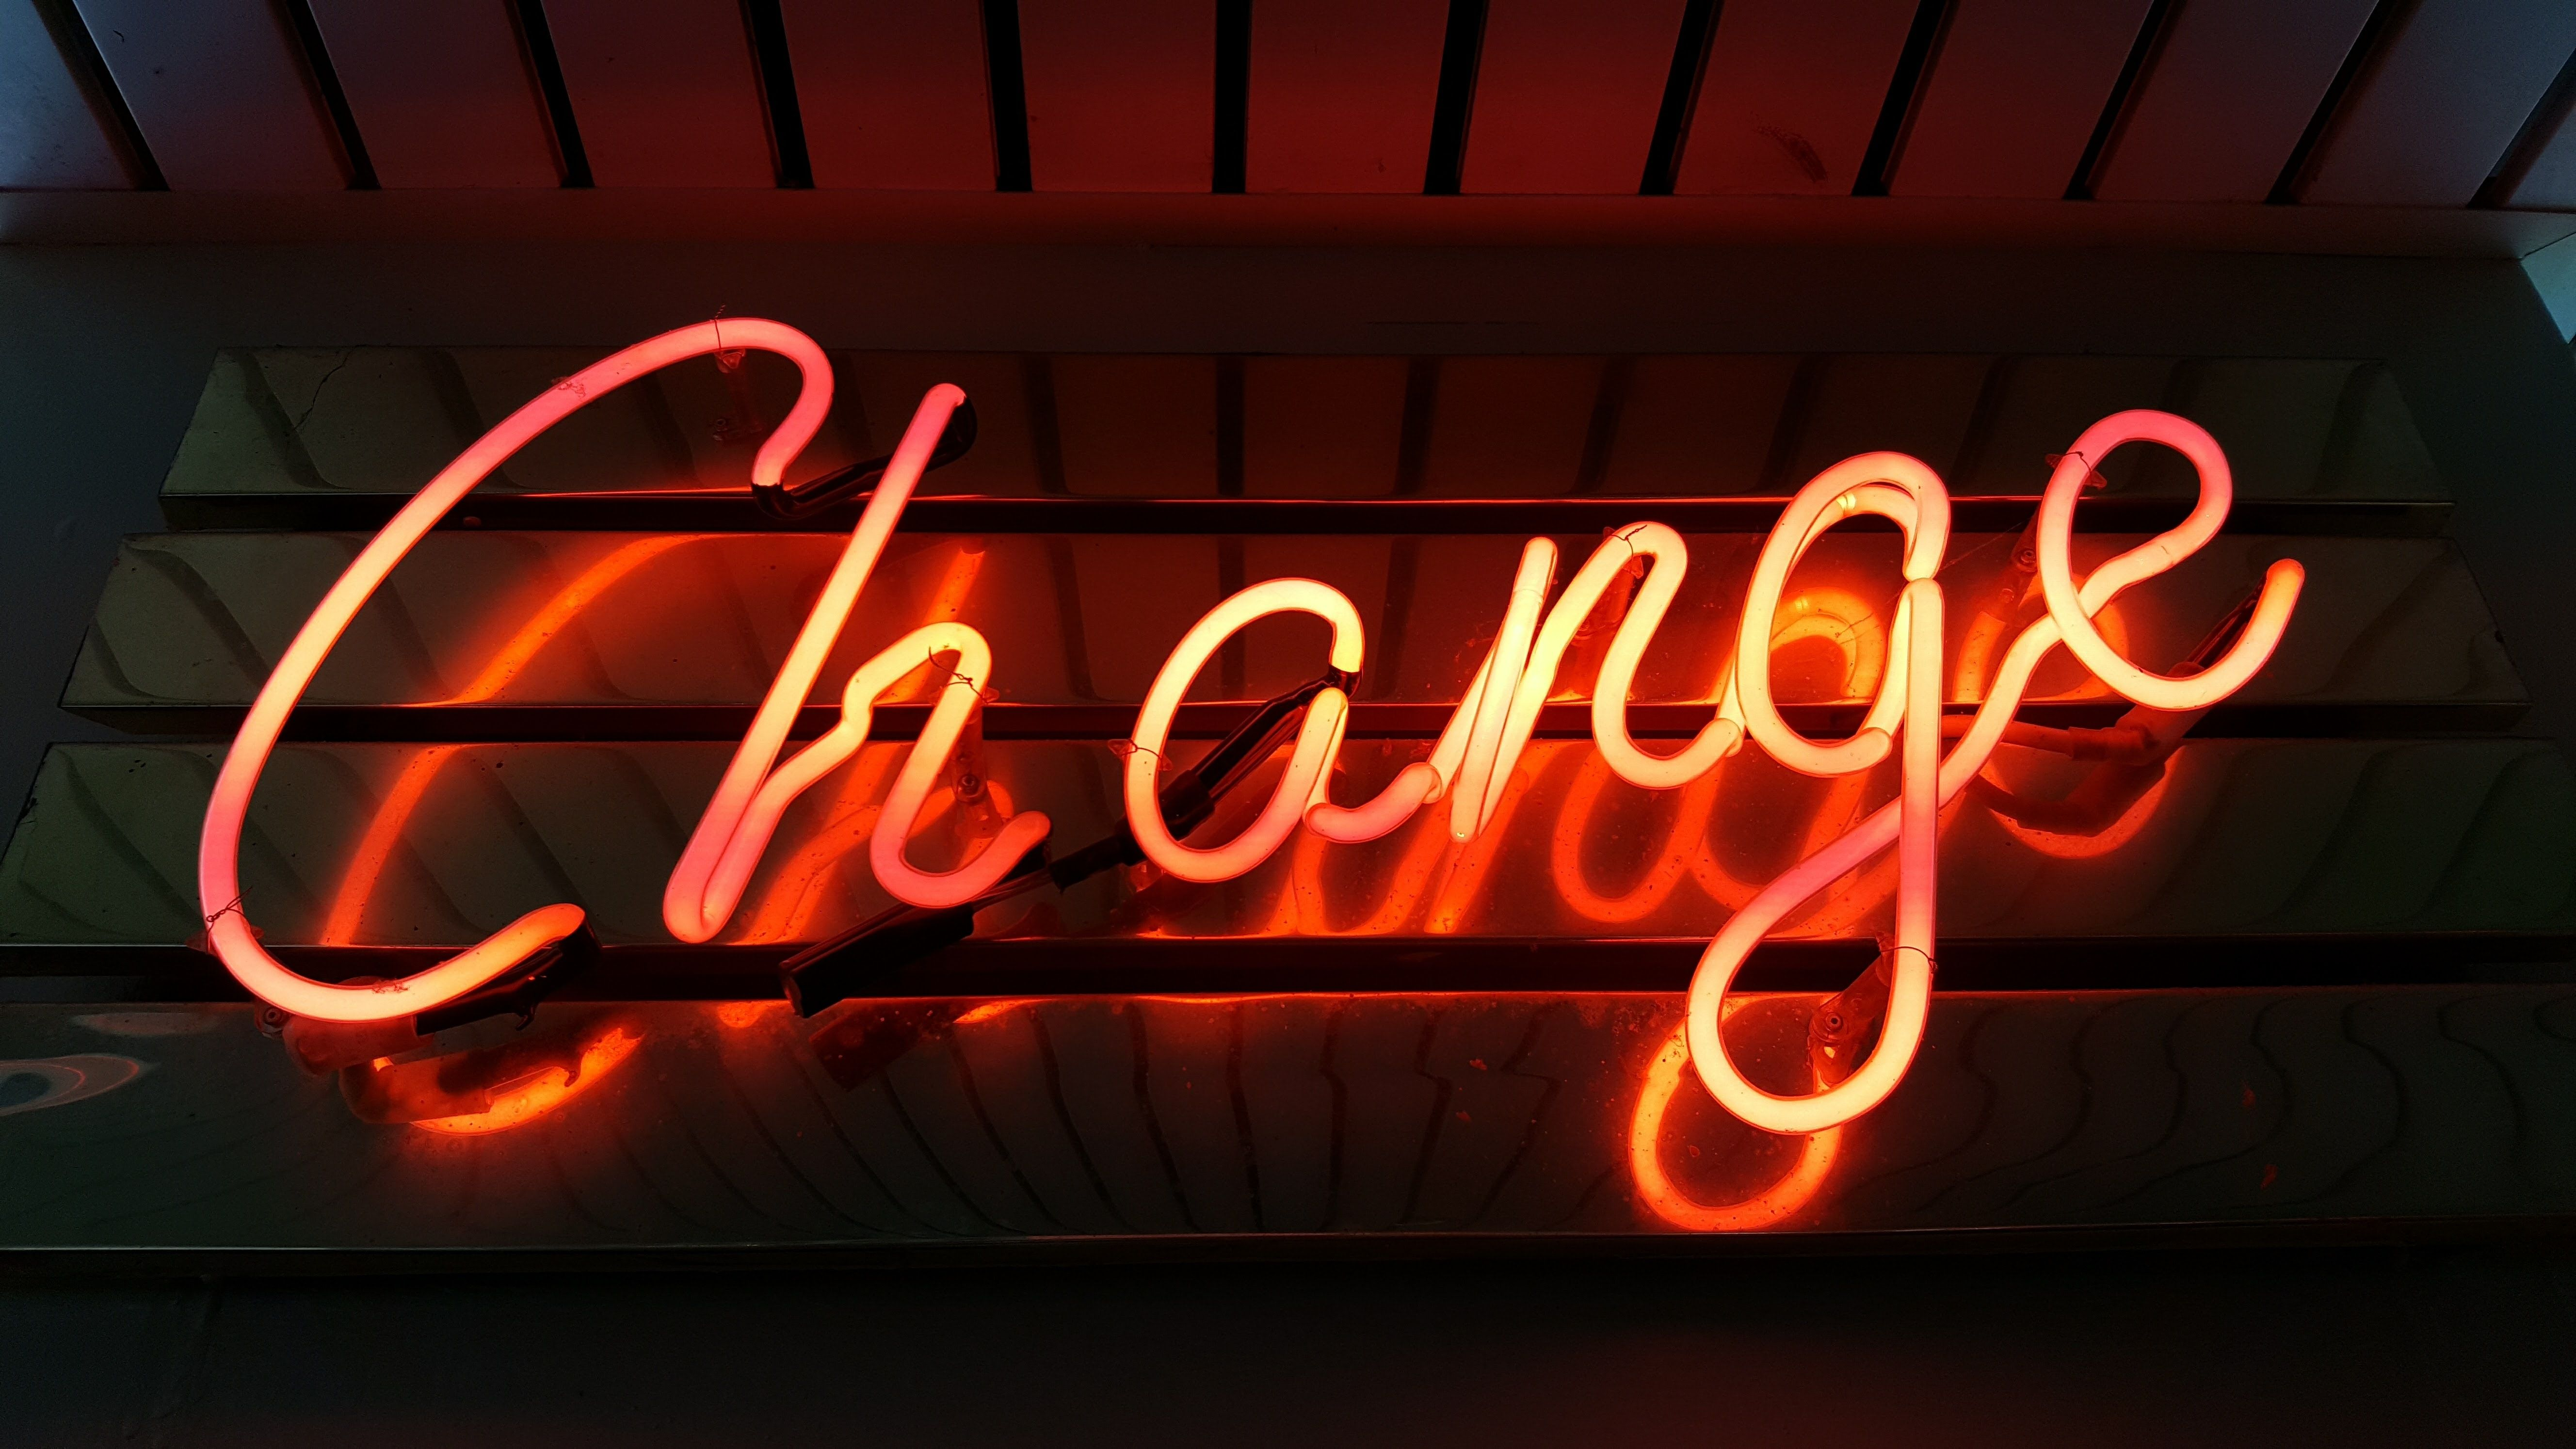 Facing change resistance? Understand it first, then get your communications right